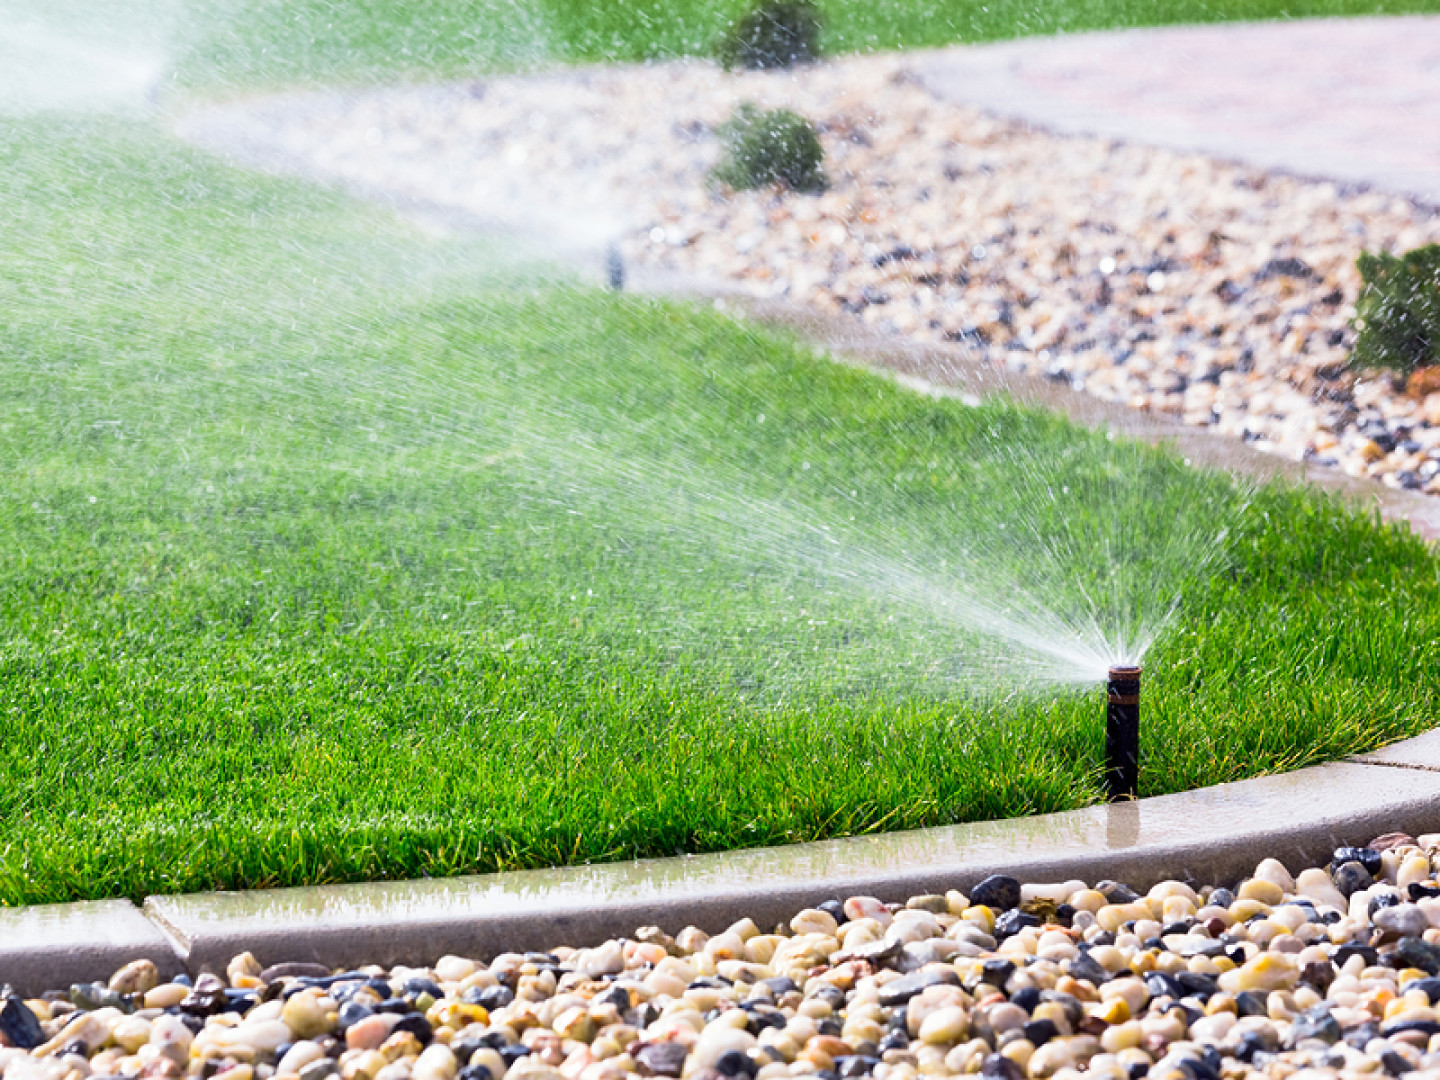 Irrigation is key to keeping your lawn looking green!